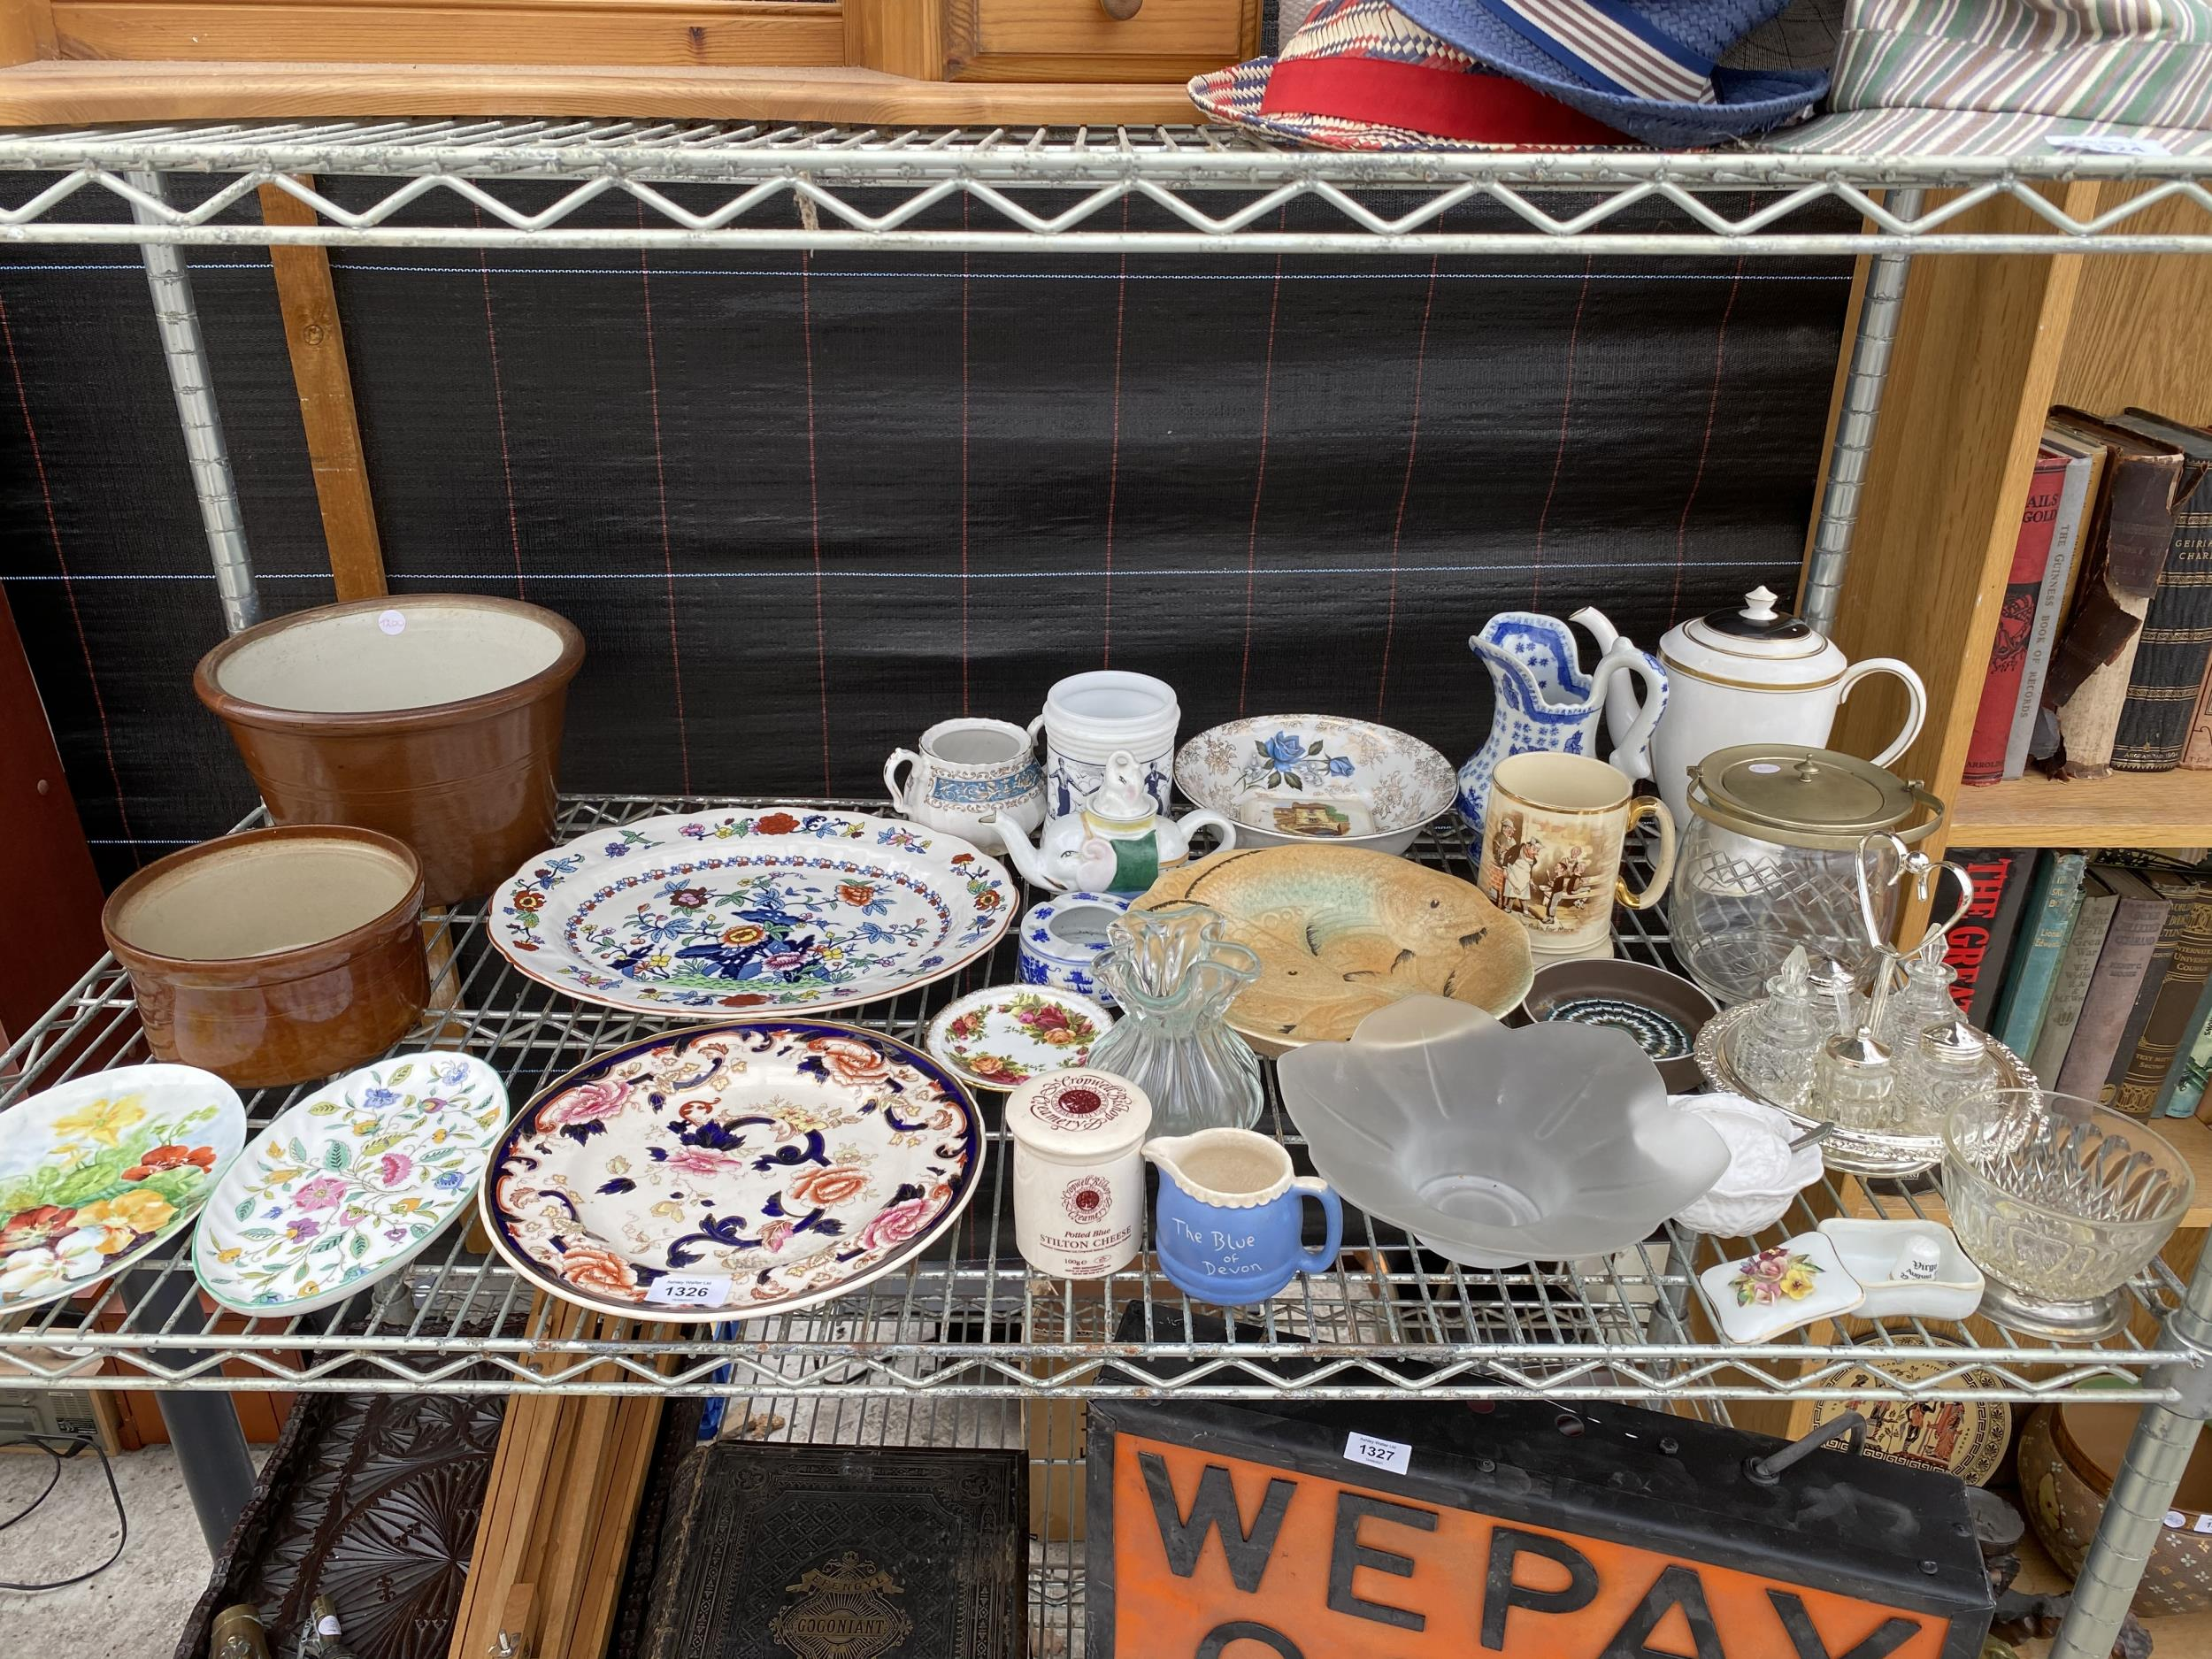 AN ASSORTMENT OF CERAMIC AND GLASS WARE TO INCLUDE PLATES, A CRUET SET WITH STAND AND CERAMIC JUGS